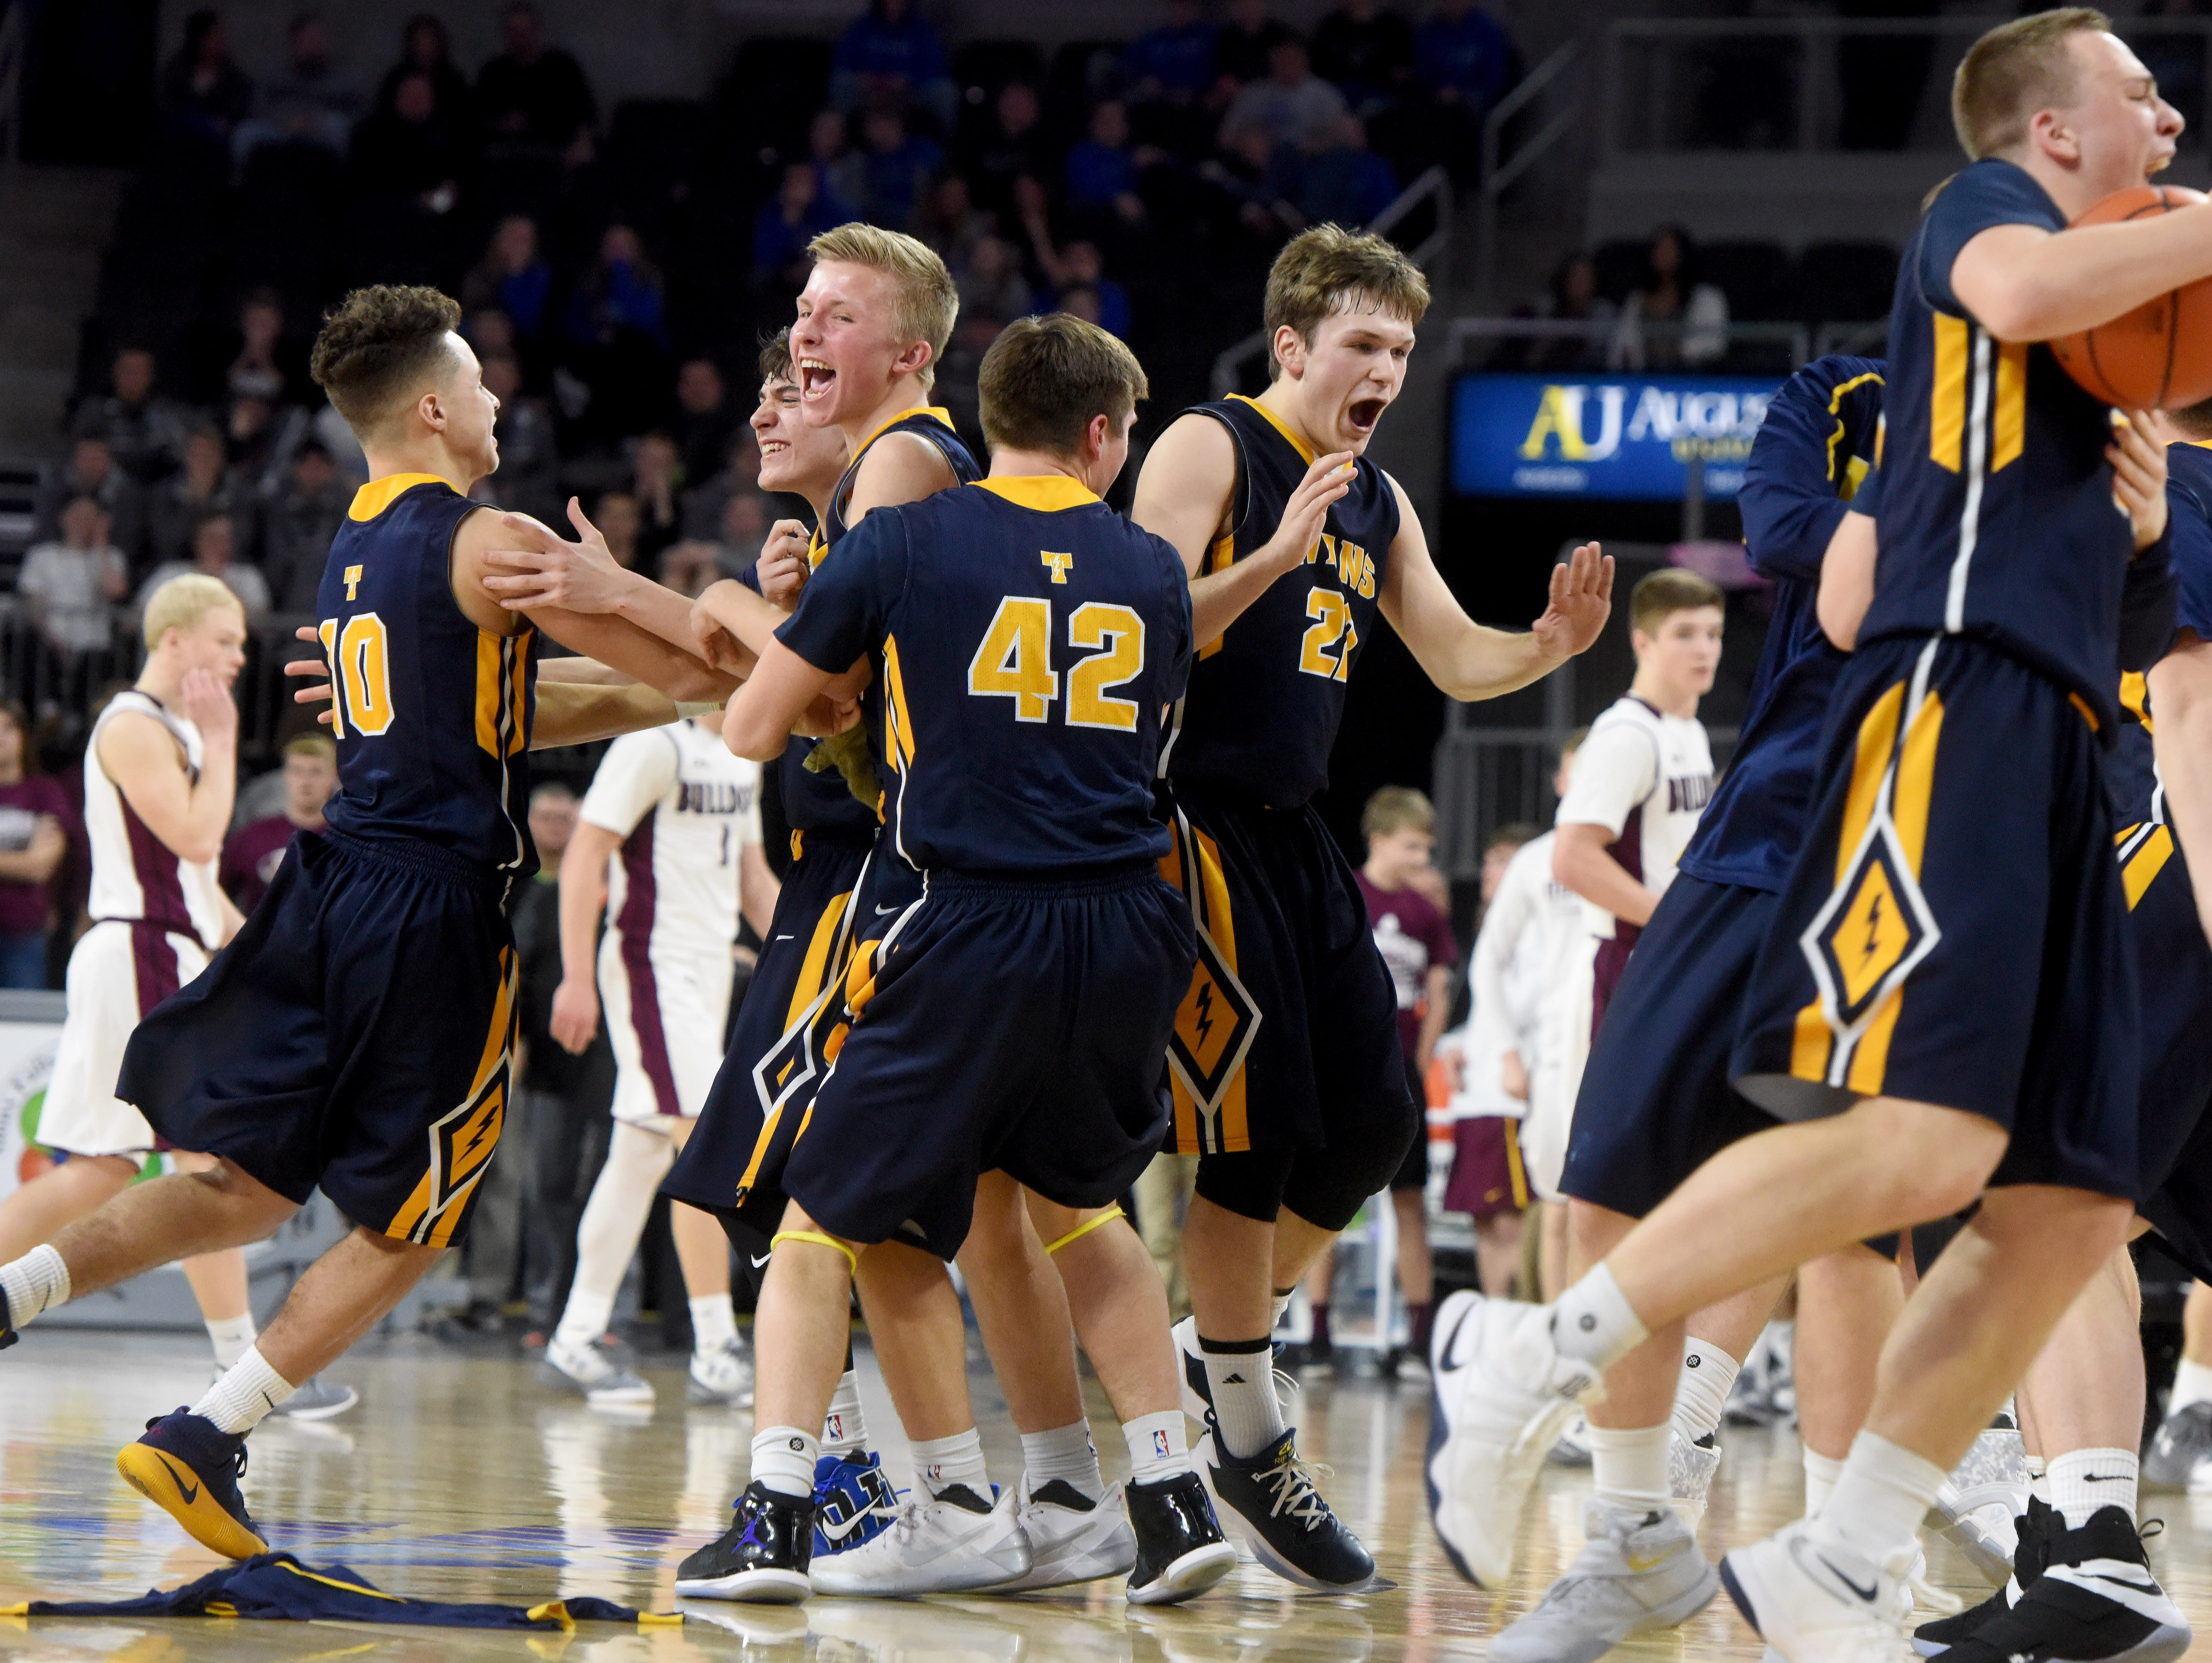 Tea Area celebrate their victory over Madison during the 2017 SDHSAA Class A boy's basketball championship at the Denny Sanford Premier Center on Saturday, March 18, 2017.